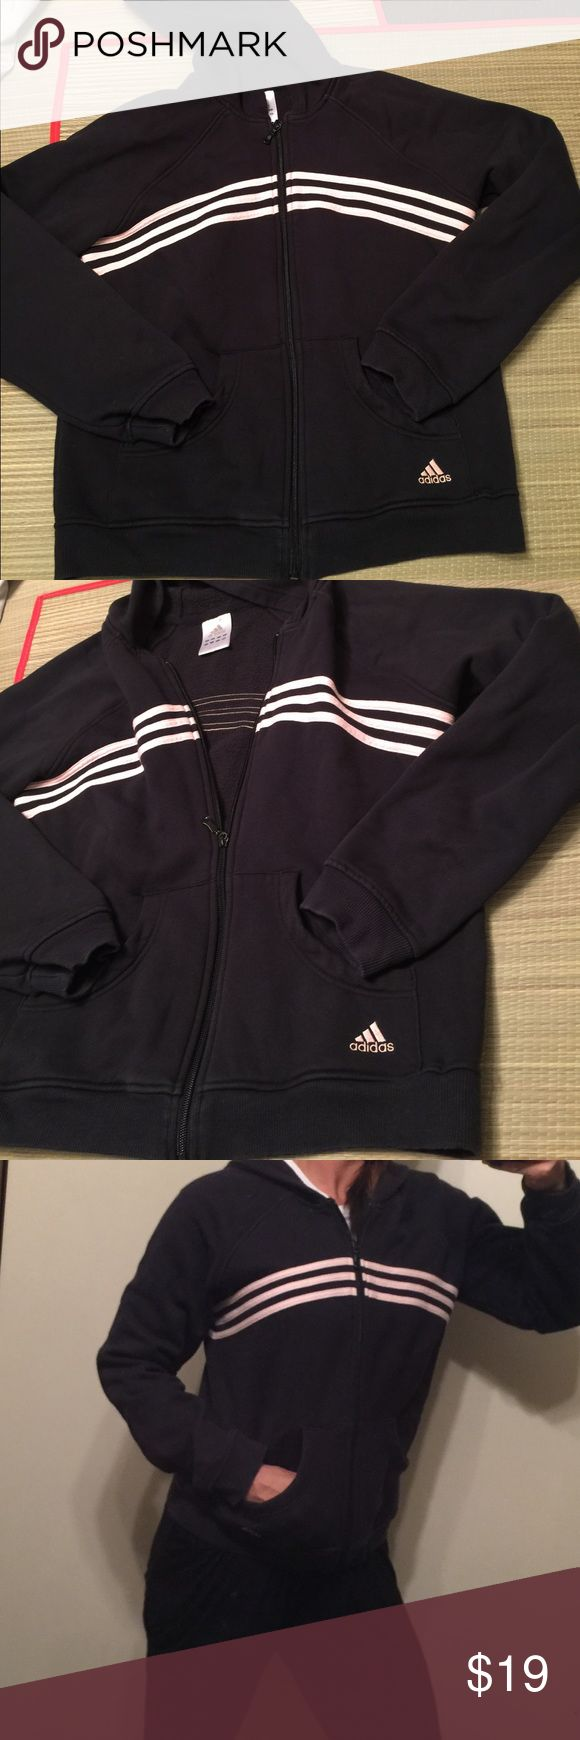 Vtg Adidas hoodie pink & black youth L women's S Vintage 90s adidas hoodie. RAre colors. Black with 3 light pink stripes. Youth size large fits women's size small-med listed as women's small. Normal fading otherwise great condition no stains or holes. Perfect vintage adidas hoodie for fall 2017 🔥price firm ships next day 🔥.     Tags m: vintage windbreaker adidas yeezy air max Nike retro hoodie Puma Fila champion shirt adidas Tops Sweatshirts & Hoodies